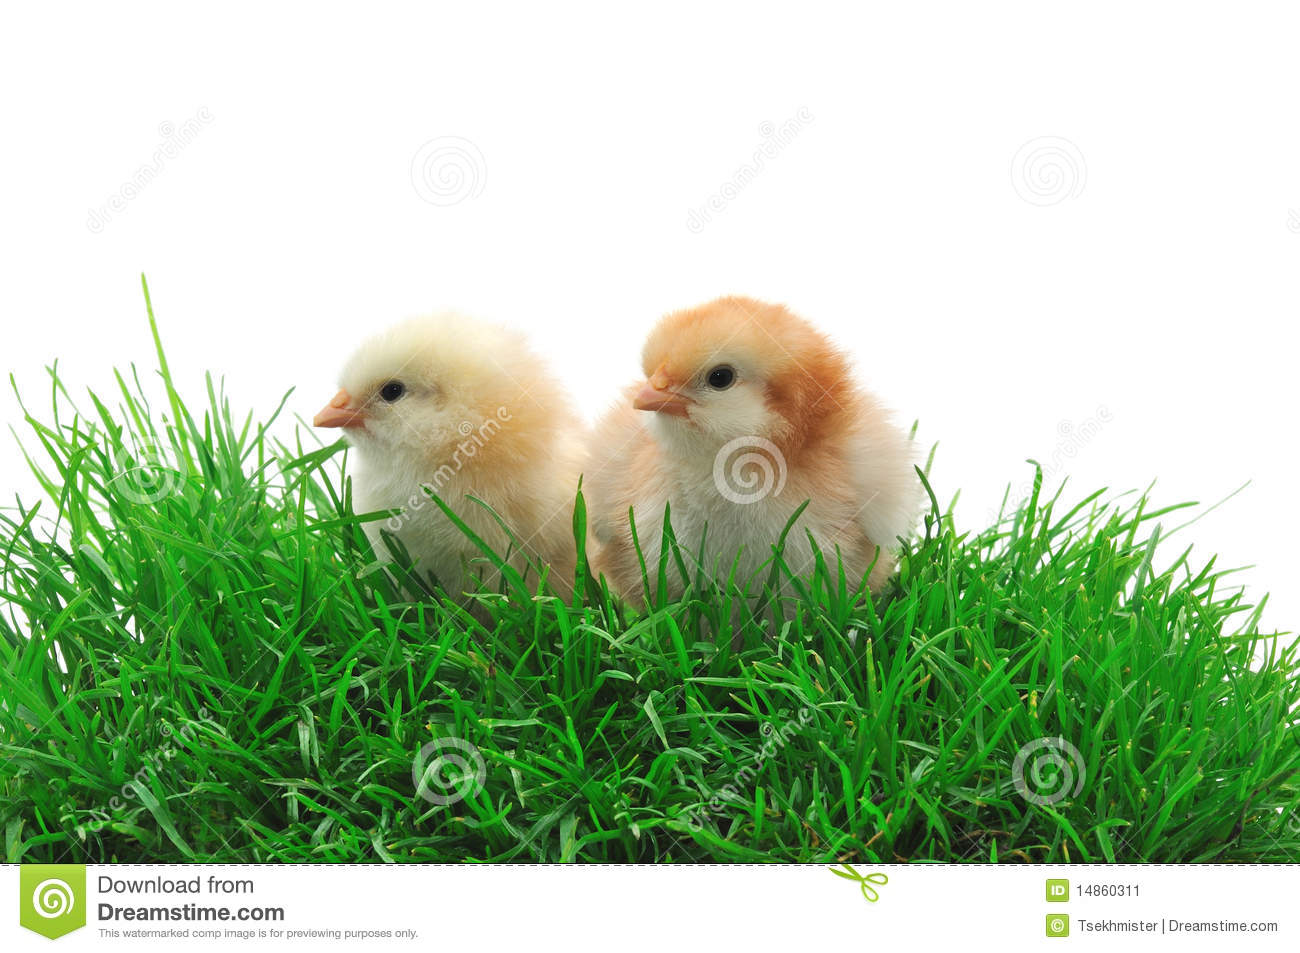 Two chicks in grass